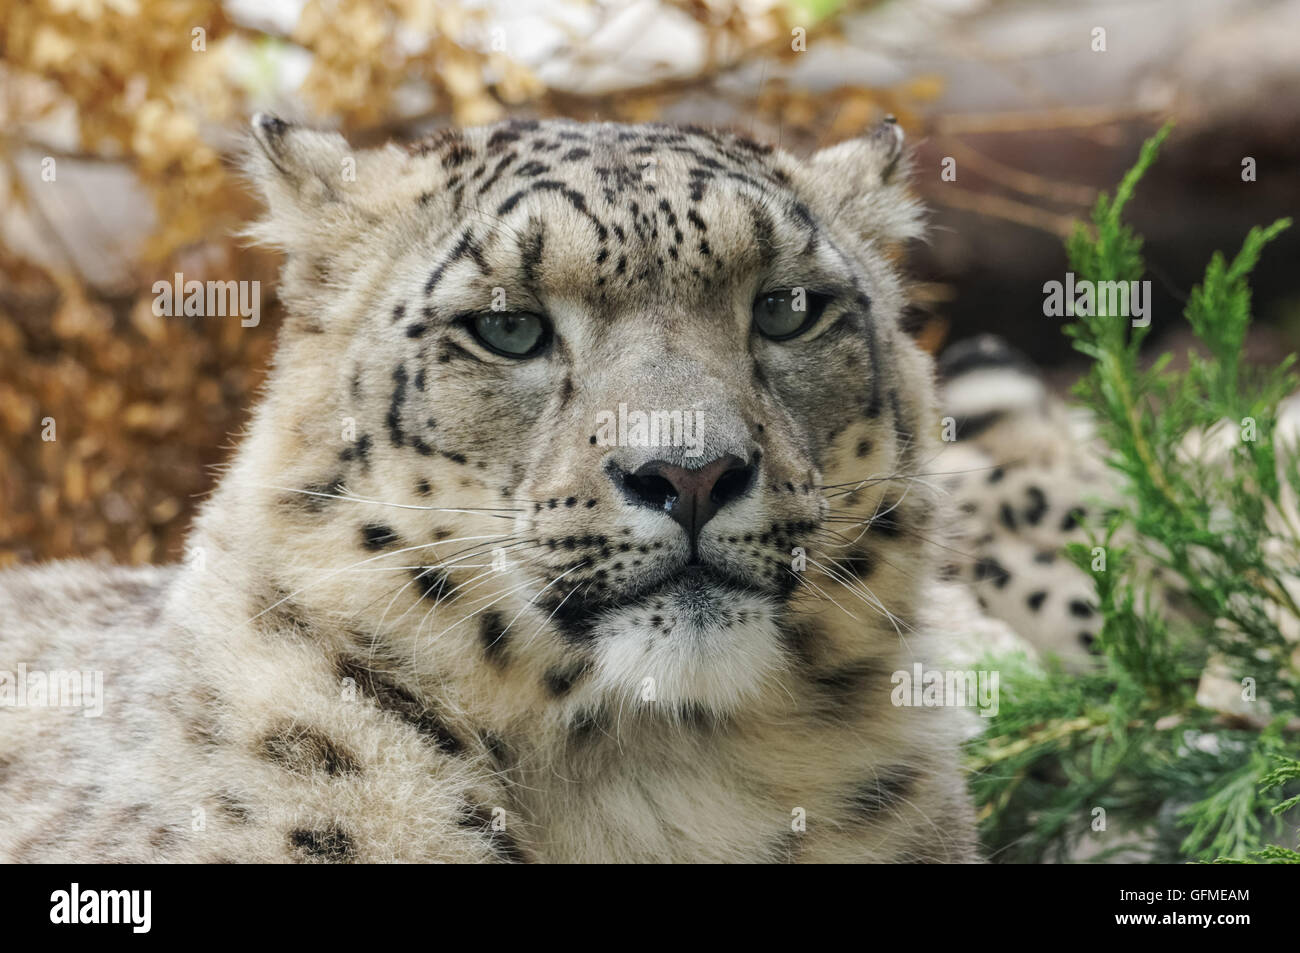 The snow leopard at Zoo, Plock Poland - Stock Image